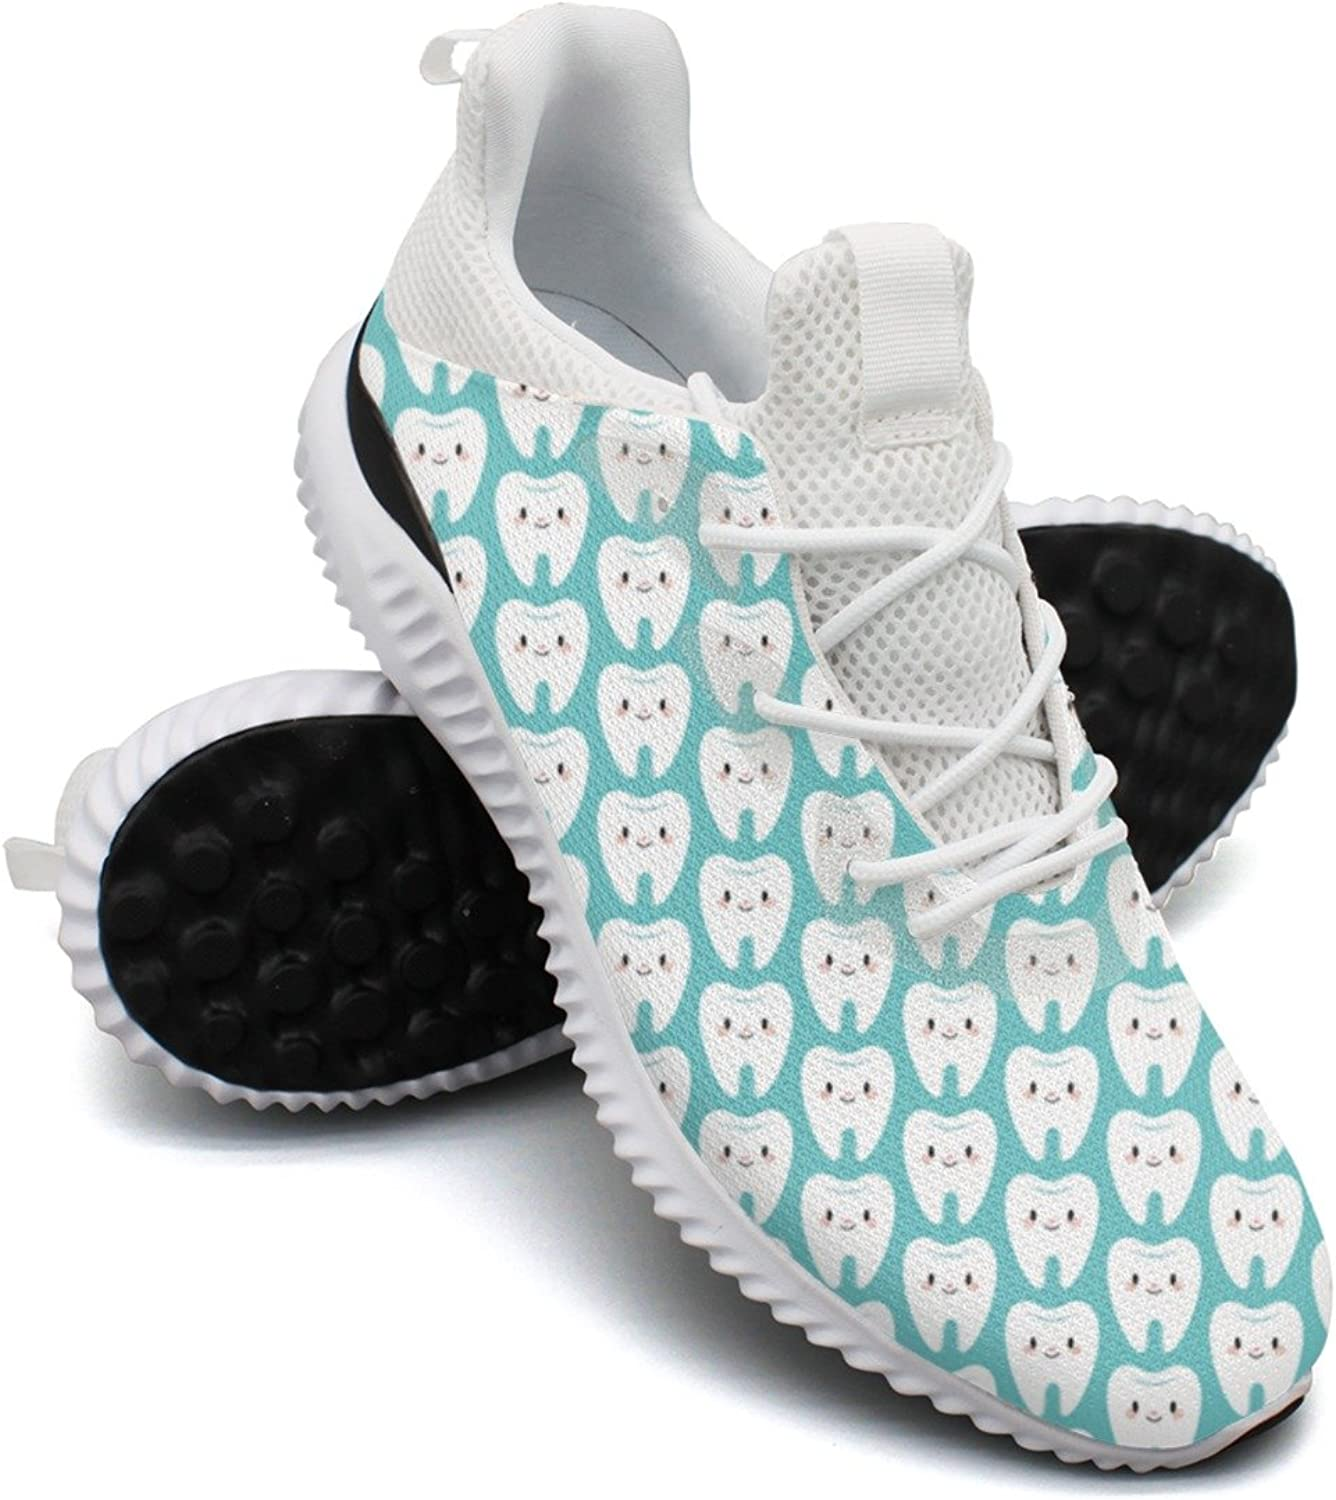 Cute Molar Teeth Leisure Casual Running shoes Young Women Printing Funny Active 8.5 Size